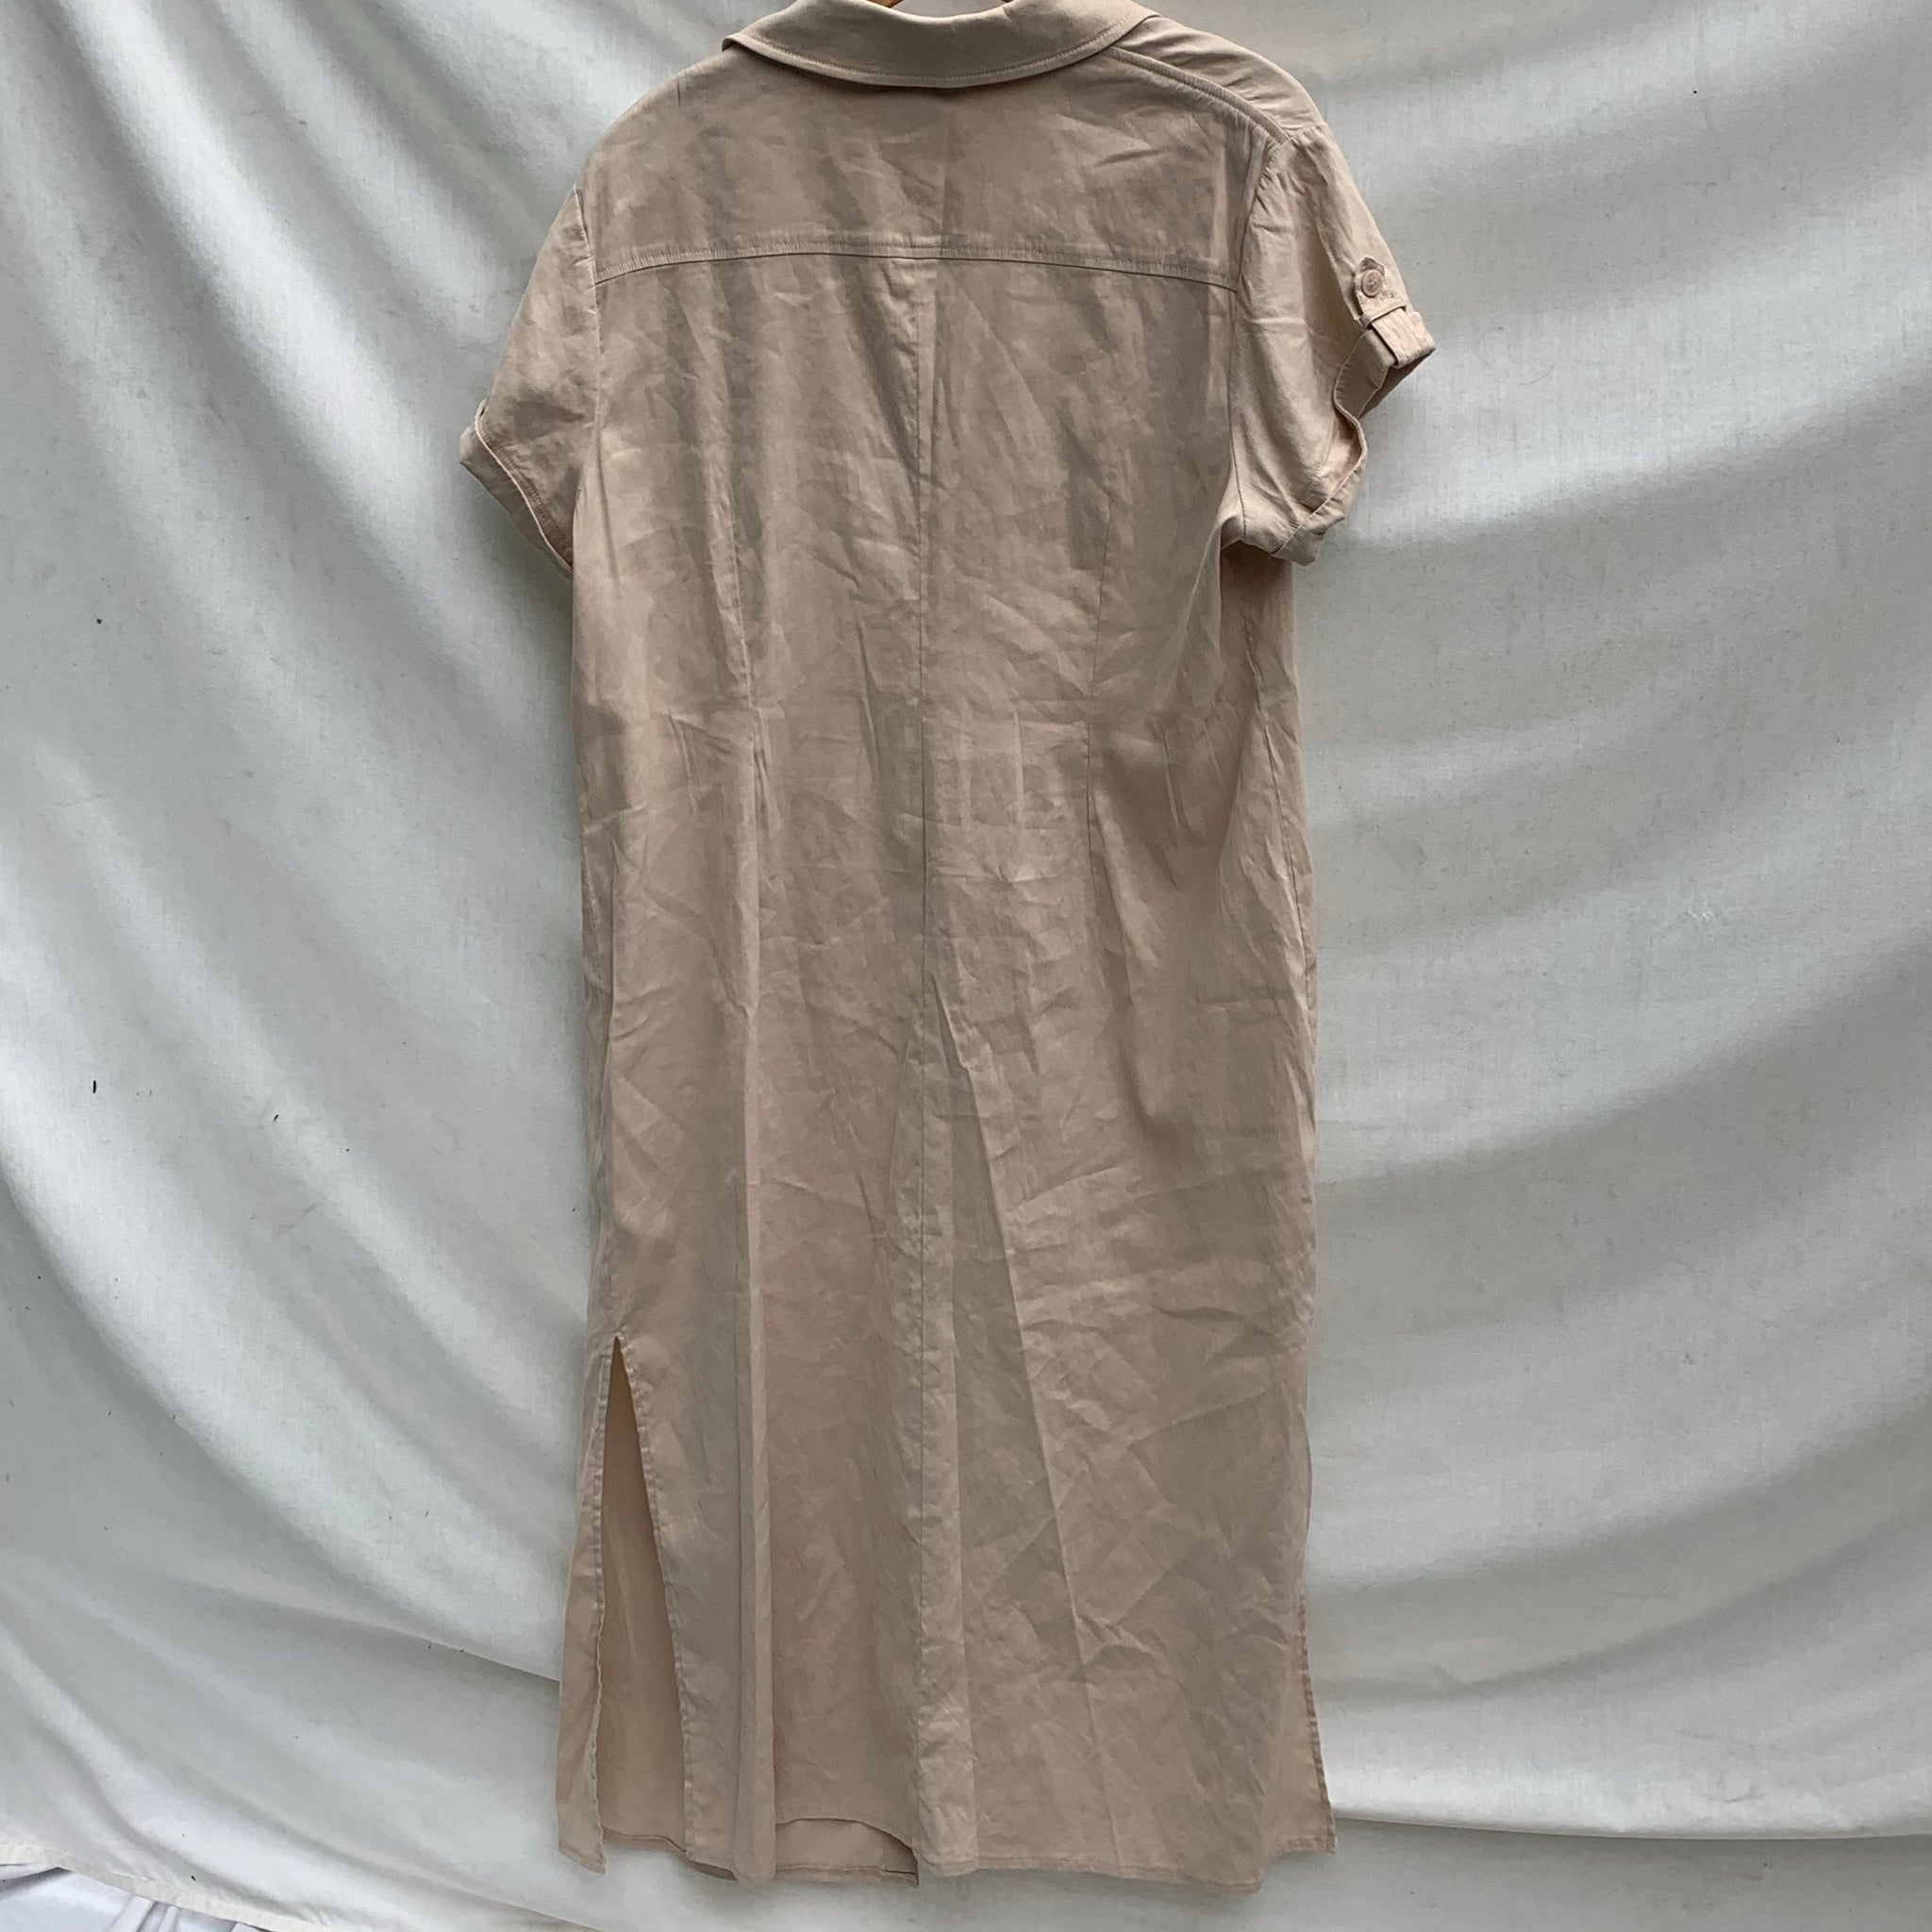 'Reeva' Khaki Linen Button-Thru Slit Midi Dress (M-XXL)